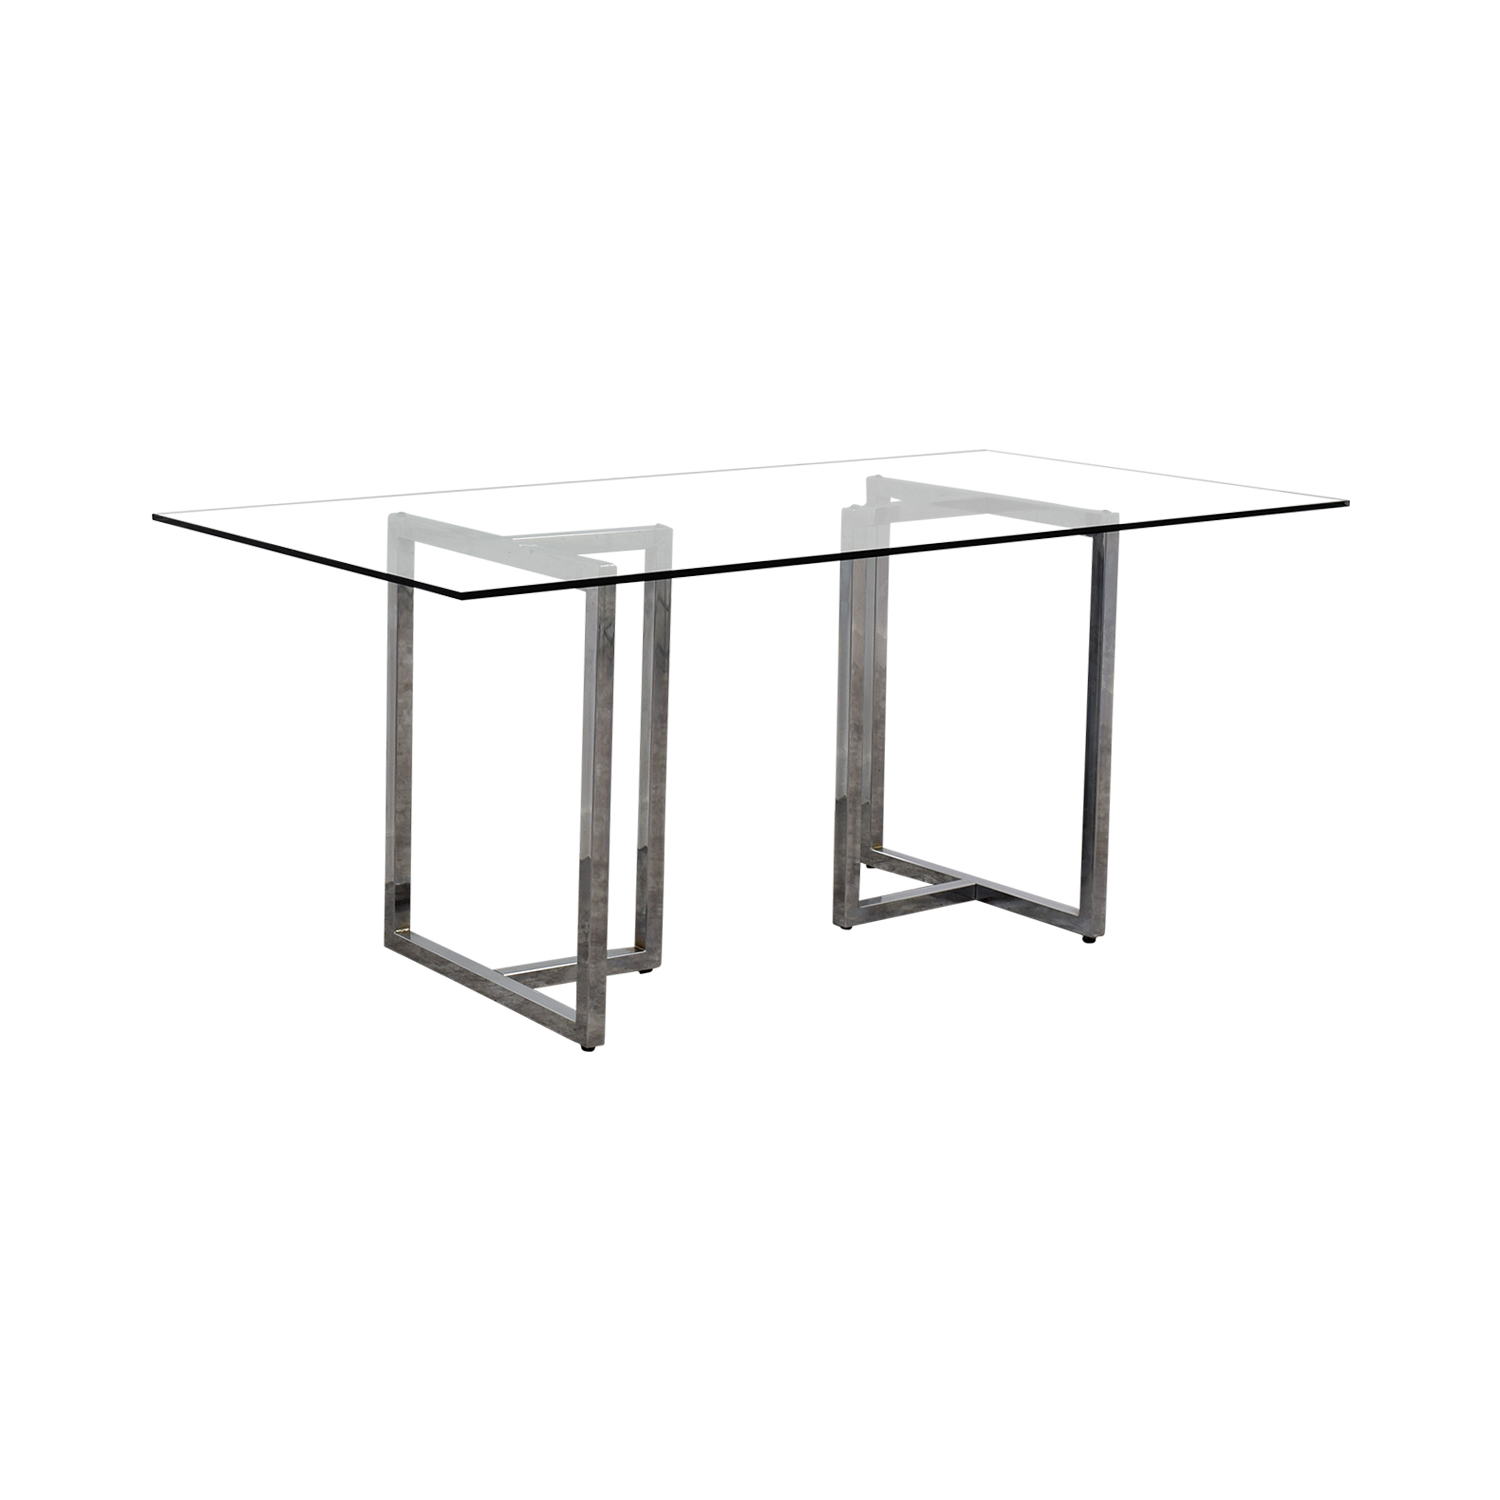 CB2 CB2 Silverado Rectangular Glass and Chrome Dining Table for sale